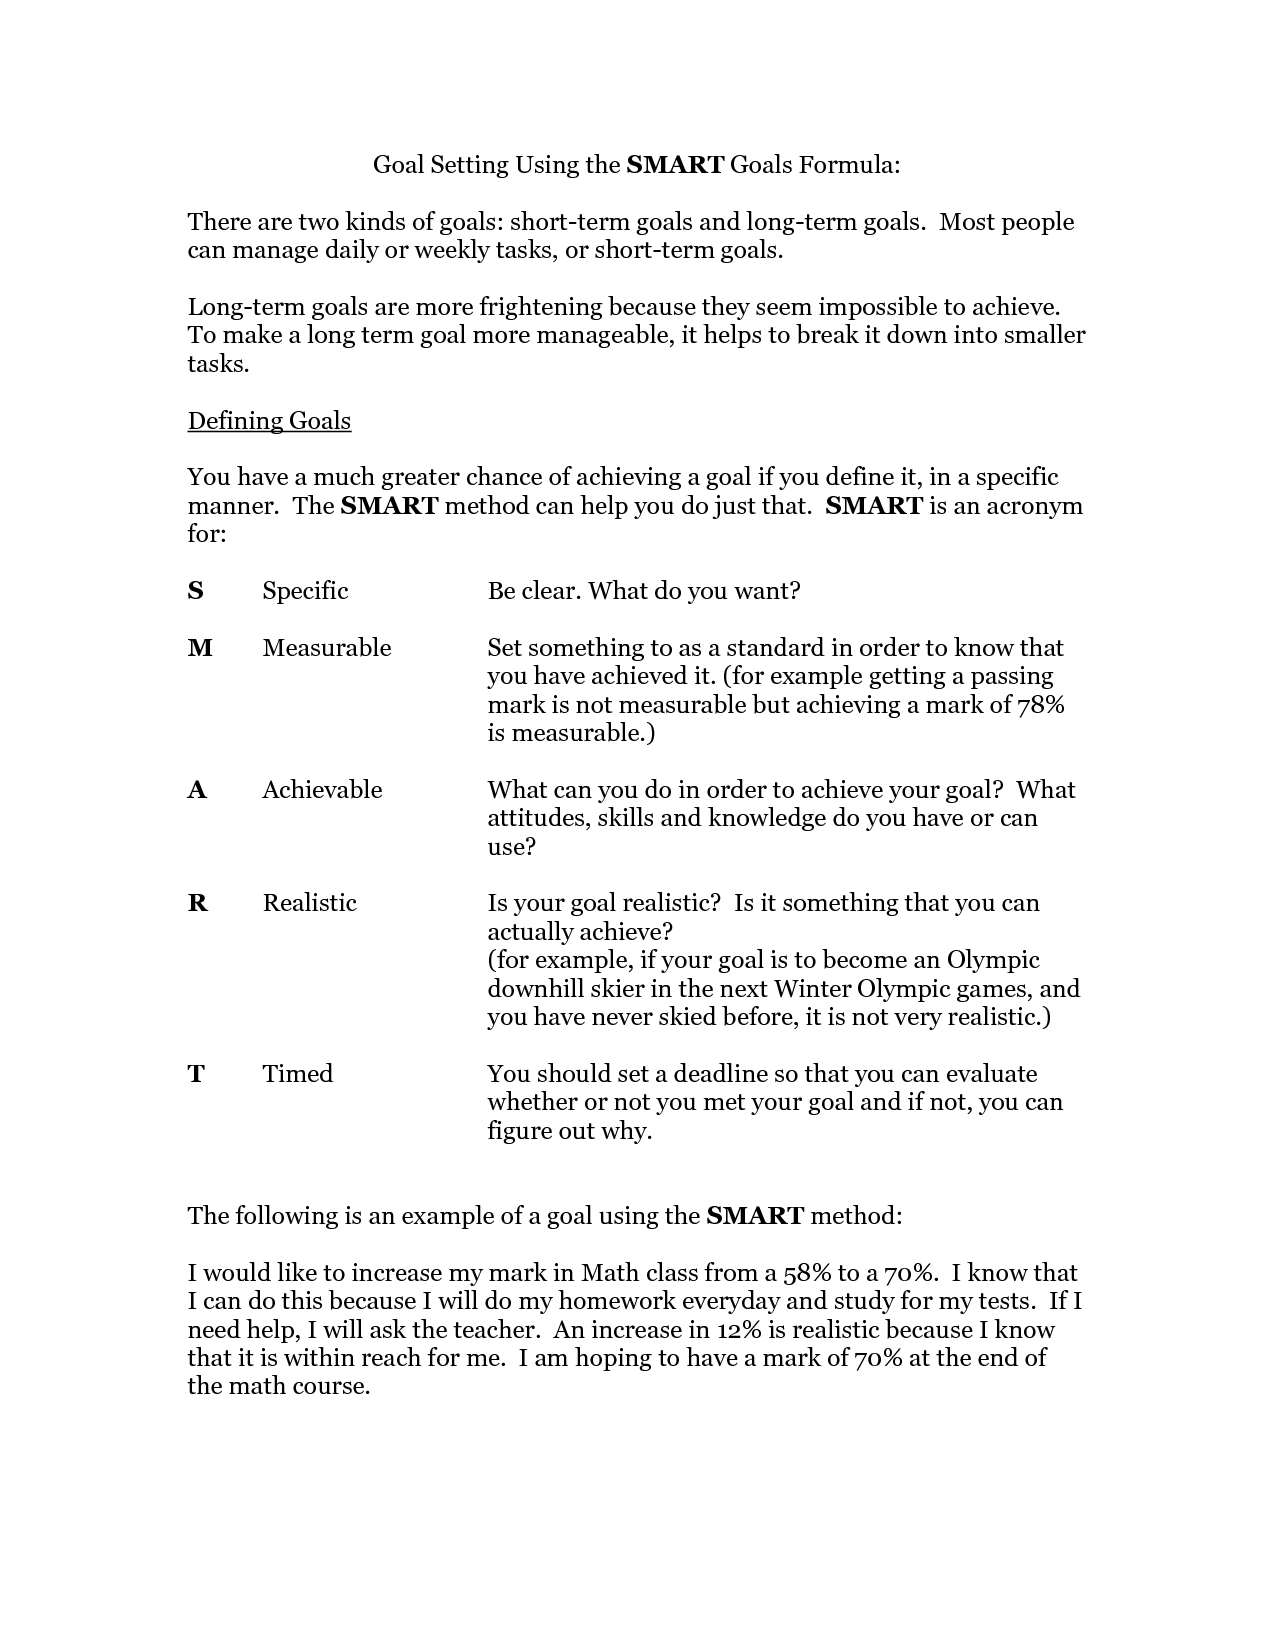 Smart Goals Worksheet Goal Setting Using The Smart Goals